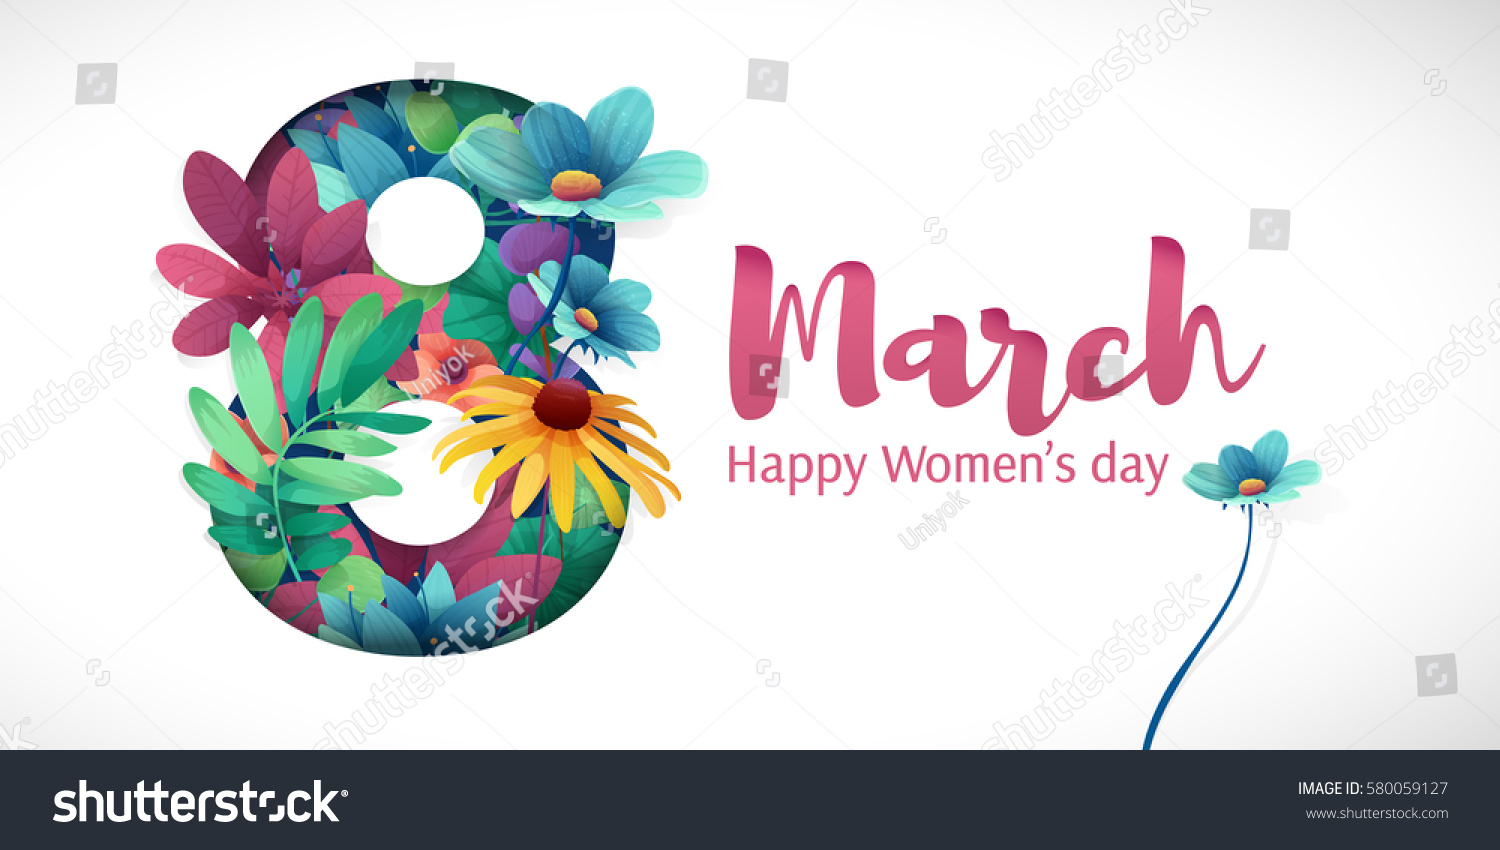 Banner for the International Women's Day. Flyer for March 8 with the decor of flowers. Invitations with the number 8 in the style of cut paper with a pattern of spring plants, leaves and flowers #580059127